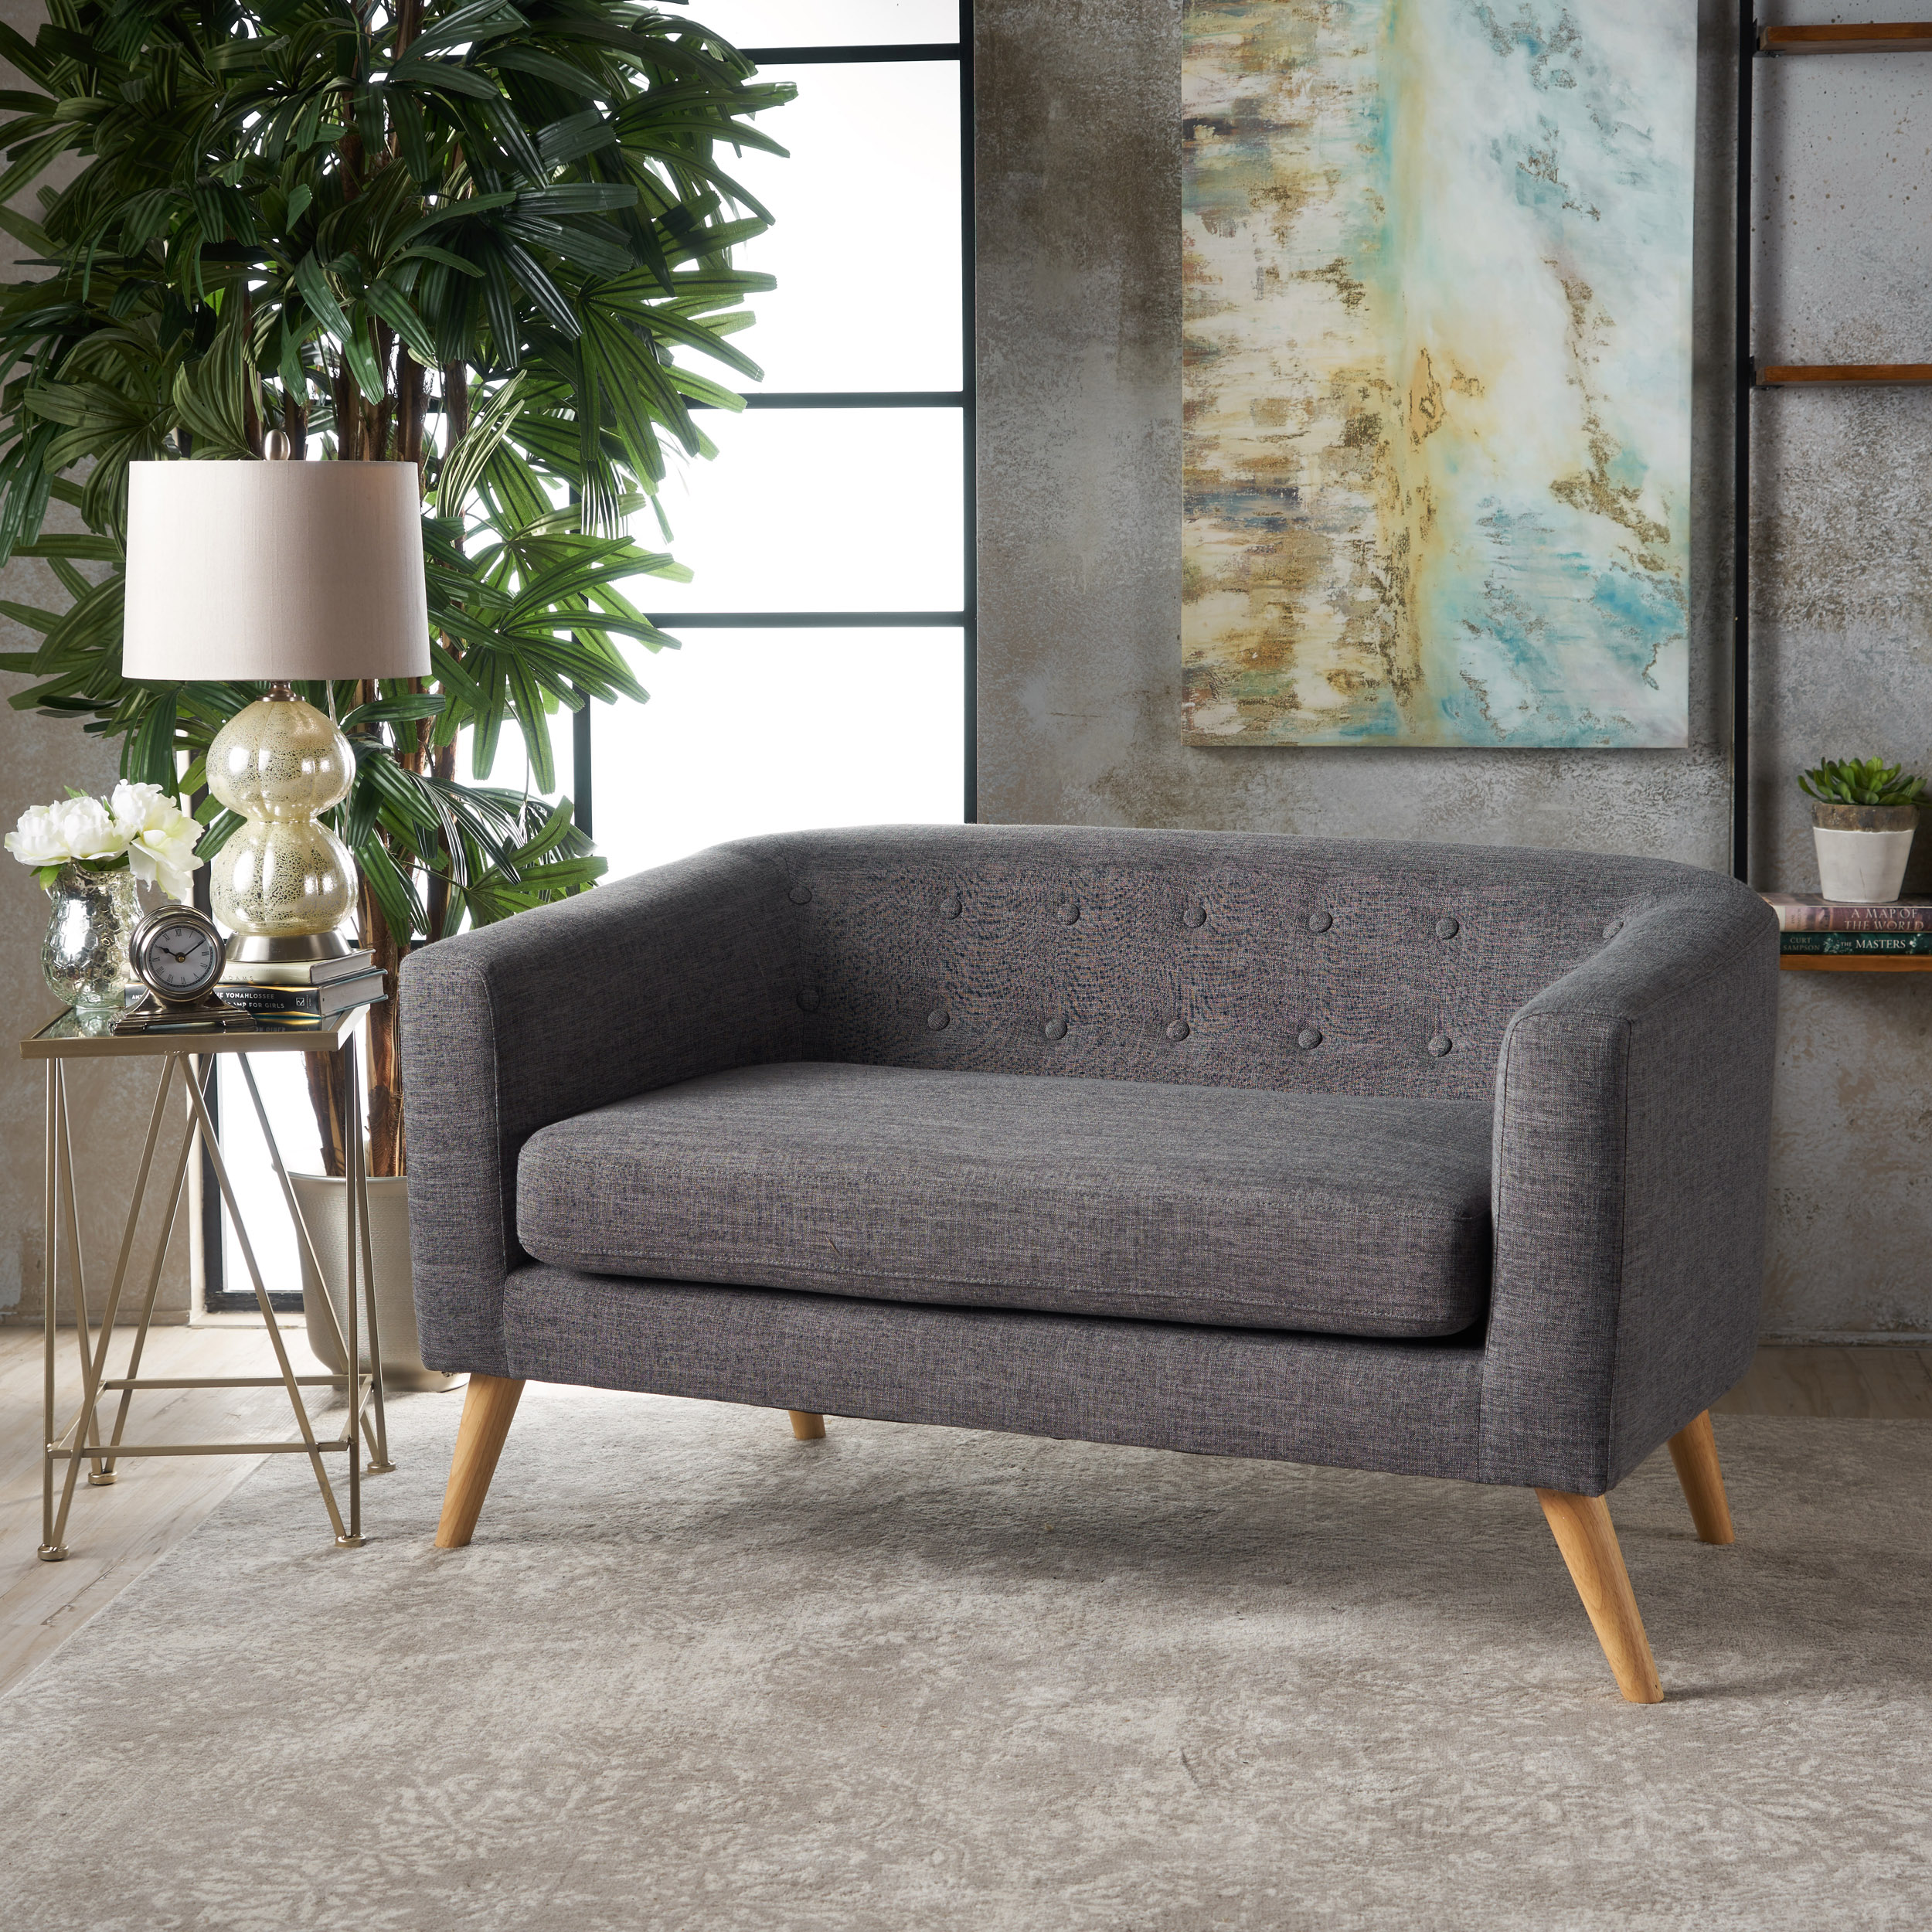 noble house loveseat - $168.98  not the most comfortable but looks cute. the more i look at it the more i think it's just for hipster dentist waiting rooms